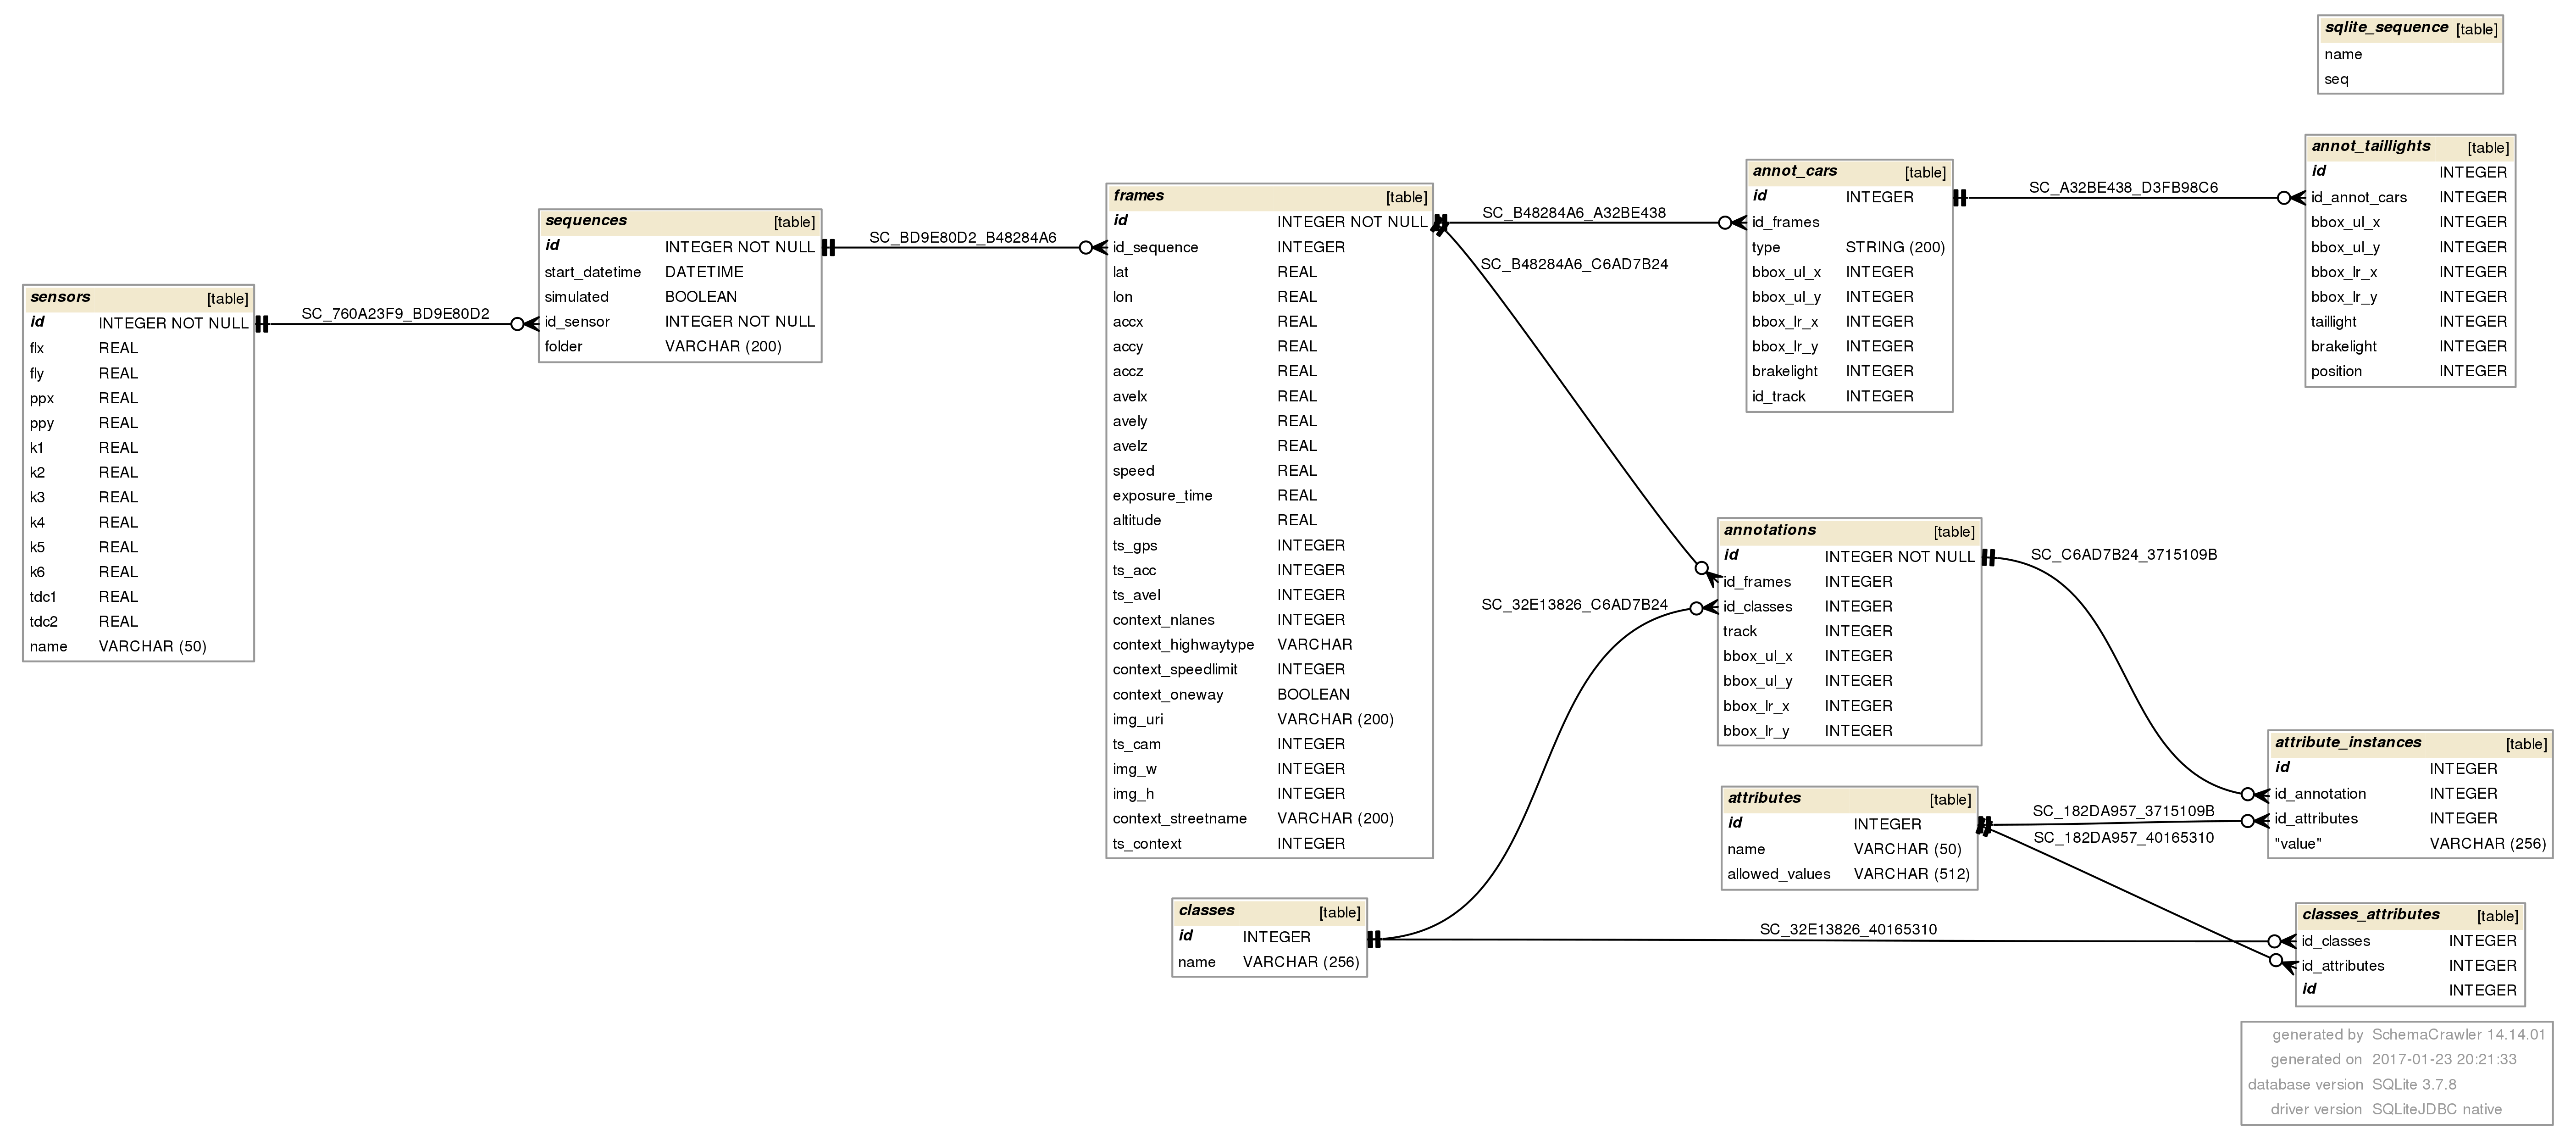 Short: Schema Diagram From An Existing Sqlite Database